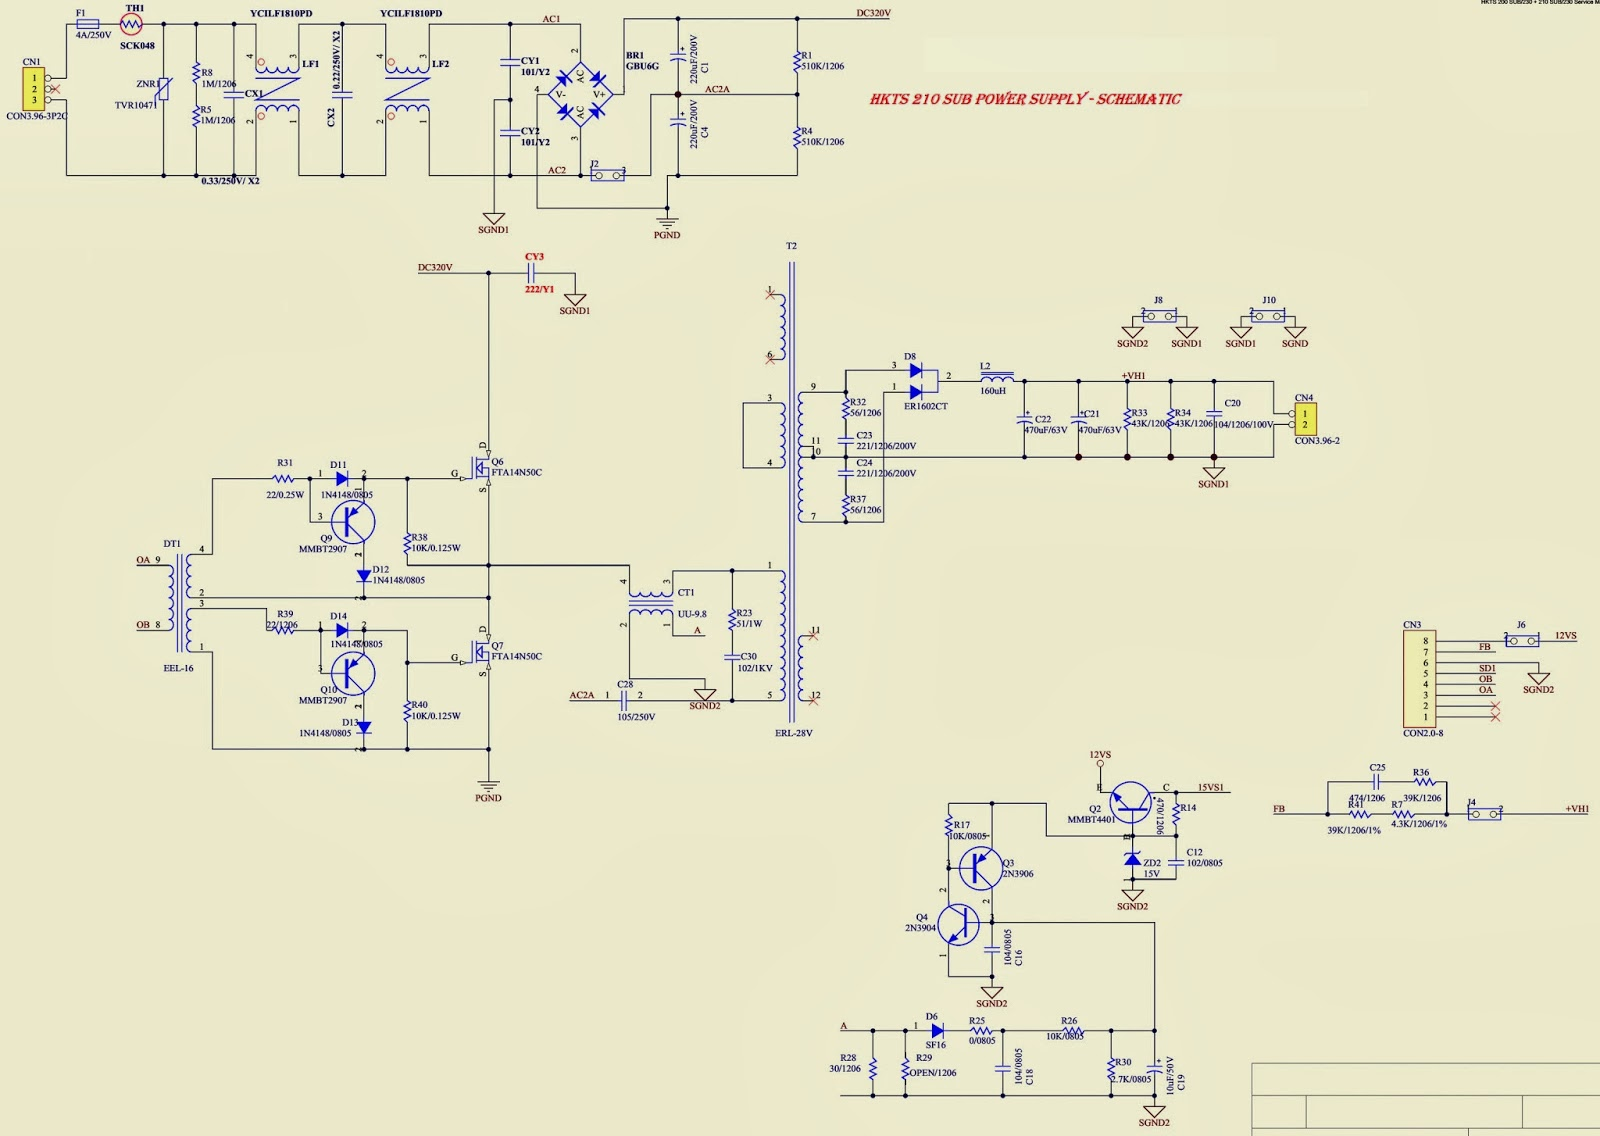 Kubota Rtv 900 Wiring Diagram Charging System Schematics Gl6500s B6100 Tractor Diagrams L4200 Odicis